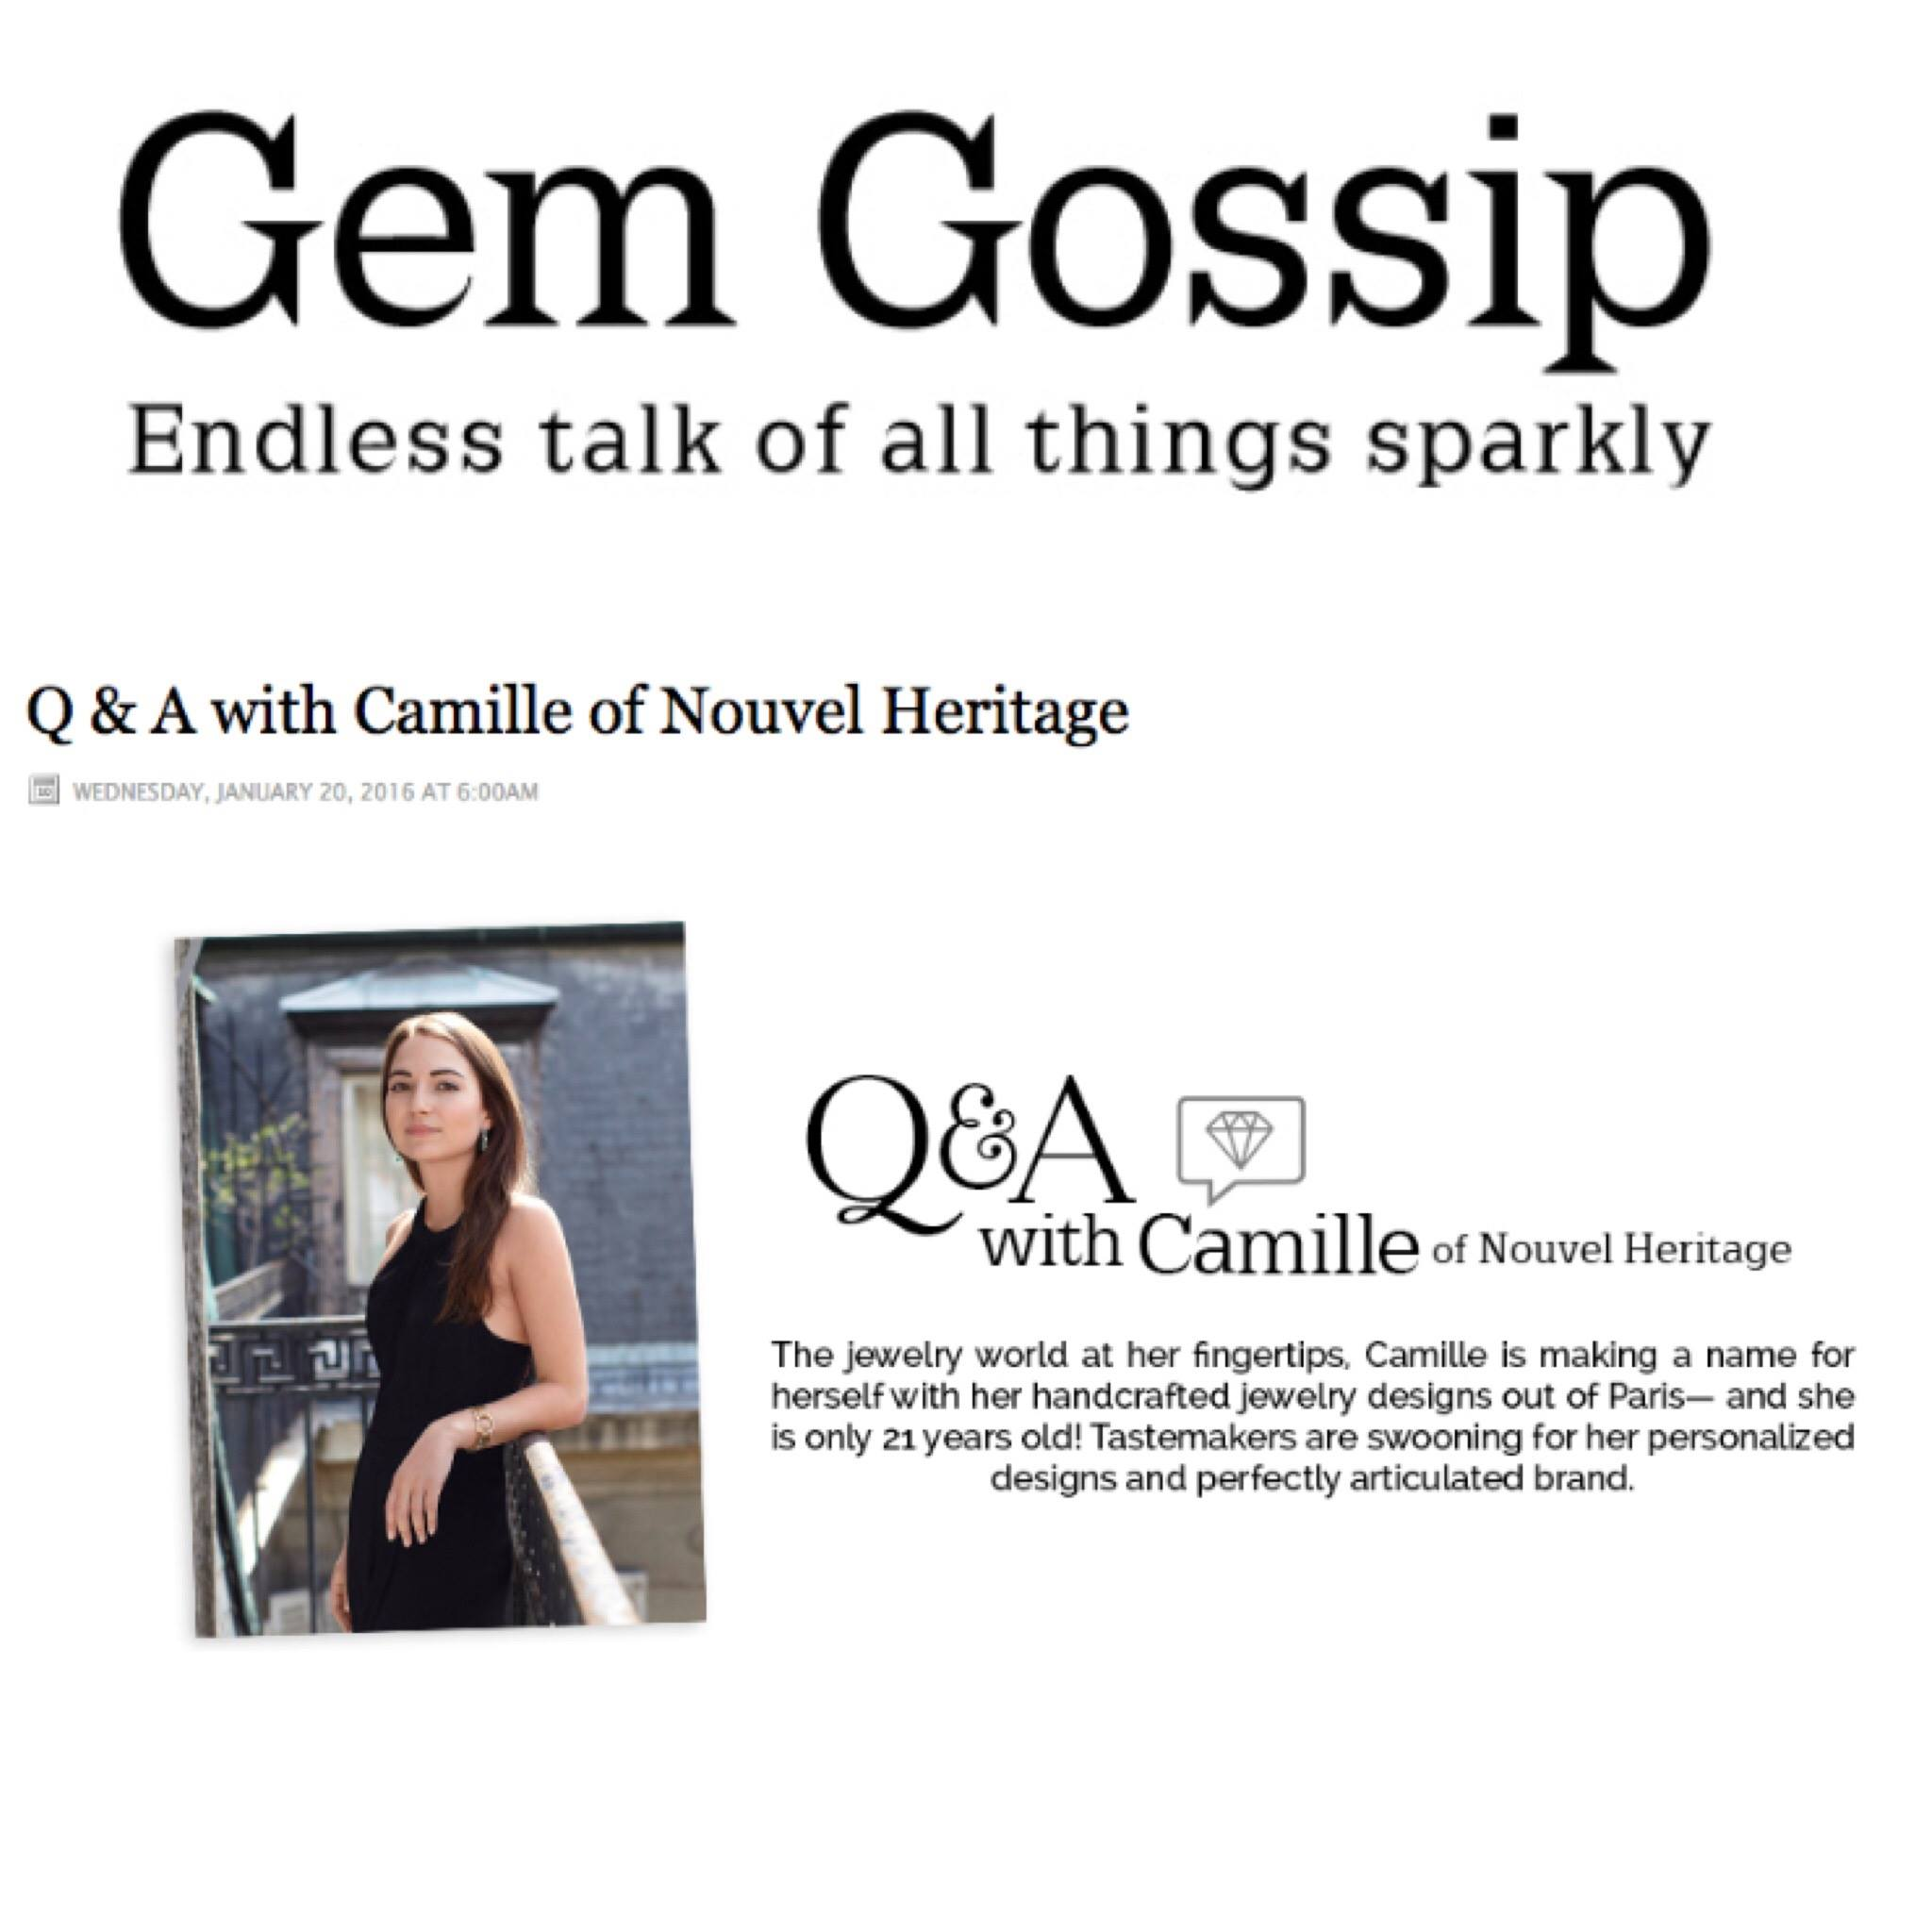 Camille of Nouvel Heritage featured in Gem Gossip